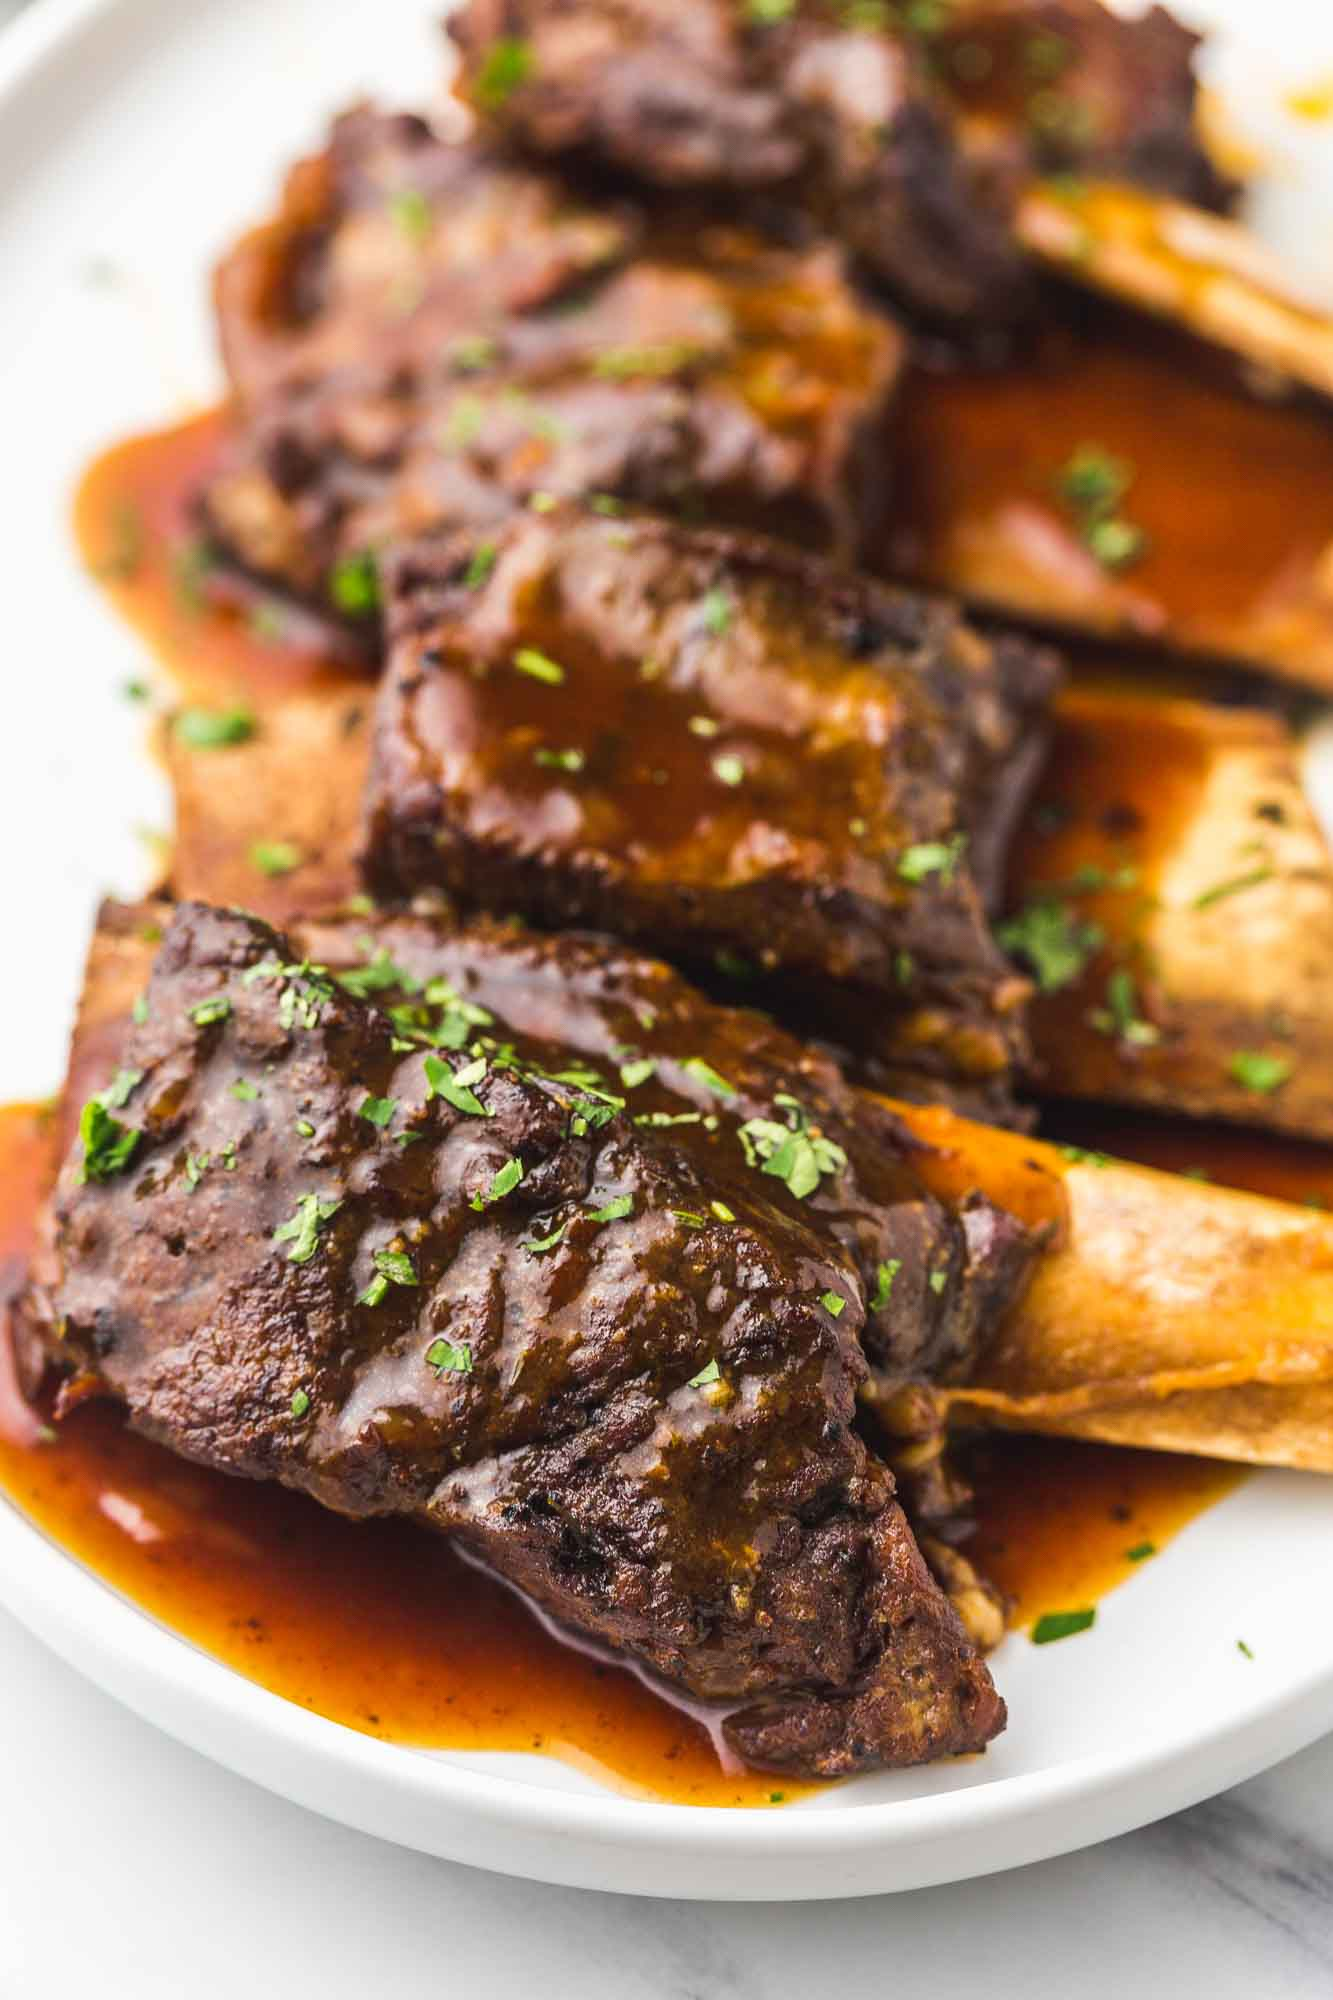 Braised short ribs on a platter, garnished with fresh parsley.